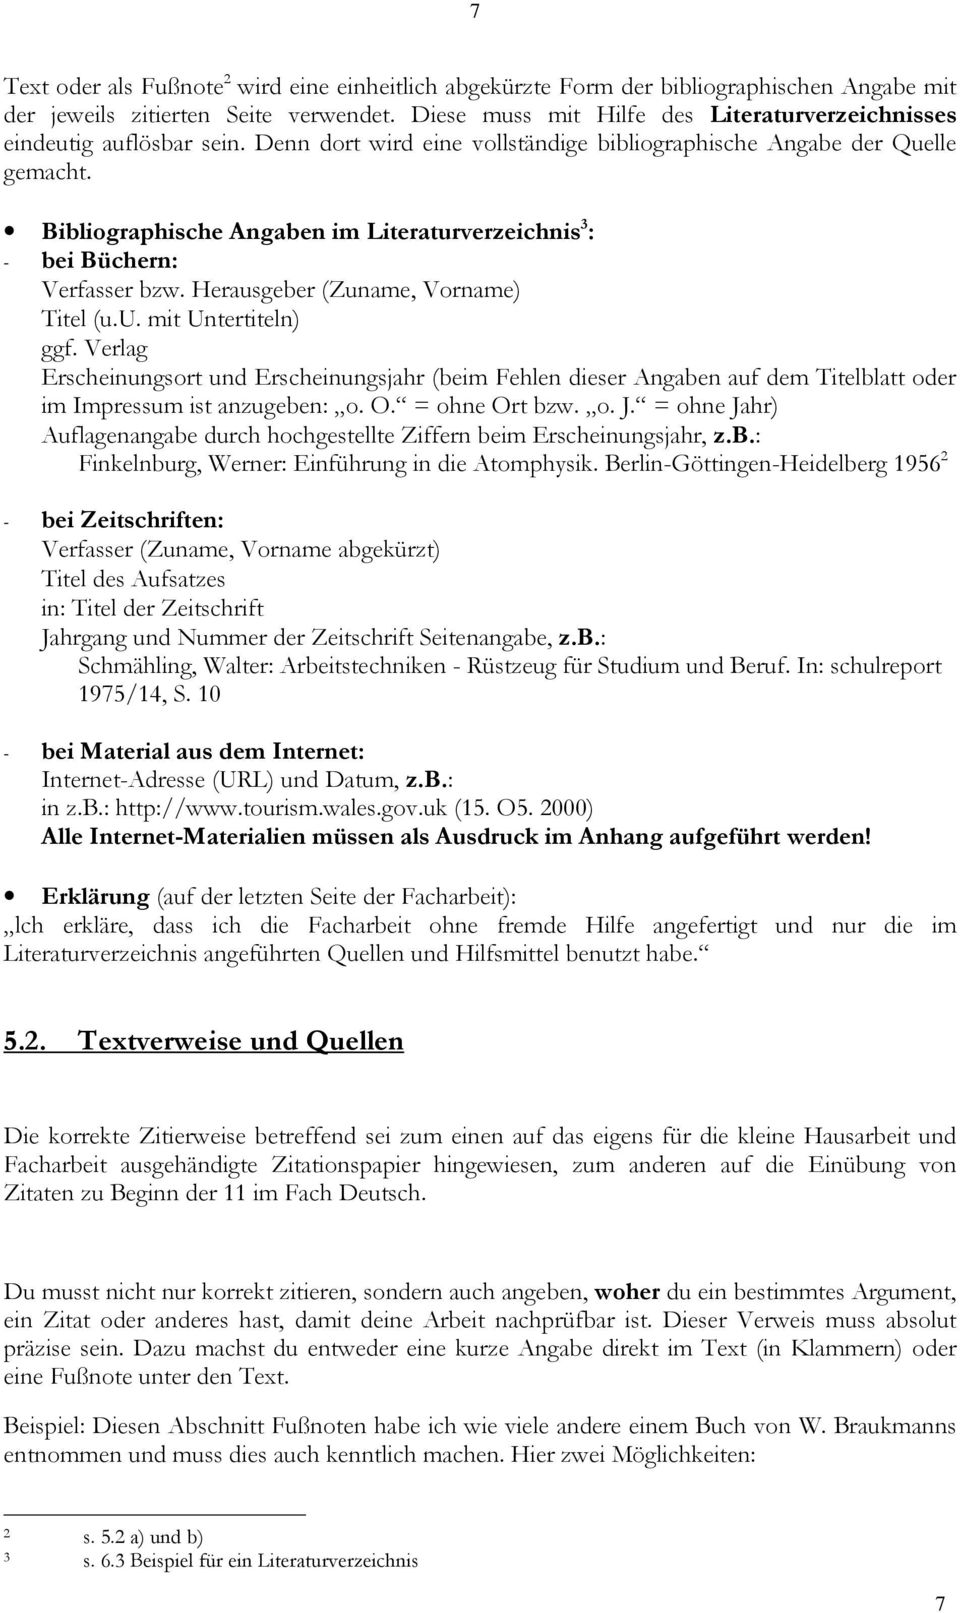 Fantastisch Fiktion Buch Bericht Vorlage Fotos - Entry Level Resume ...